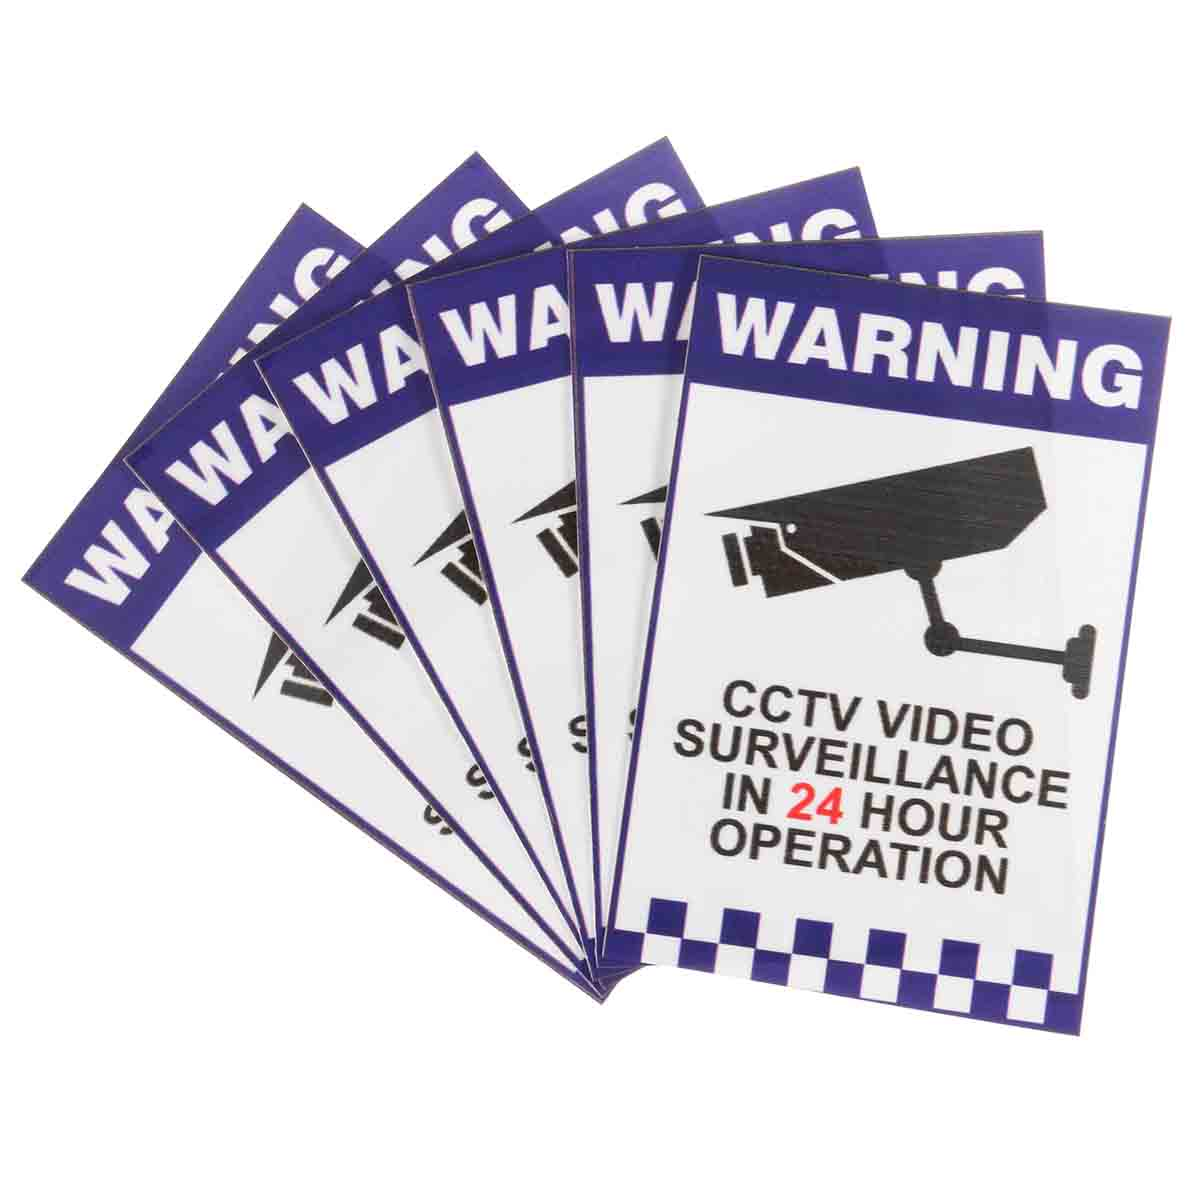 Safurance 6x Warning CCTV Security Surveillance Camera Sign Warning Decal Sticker 66x100mm Home Security Safety